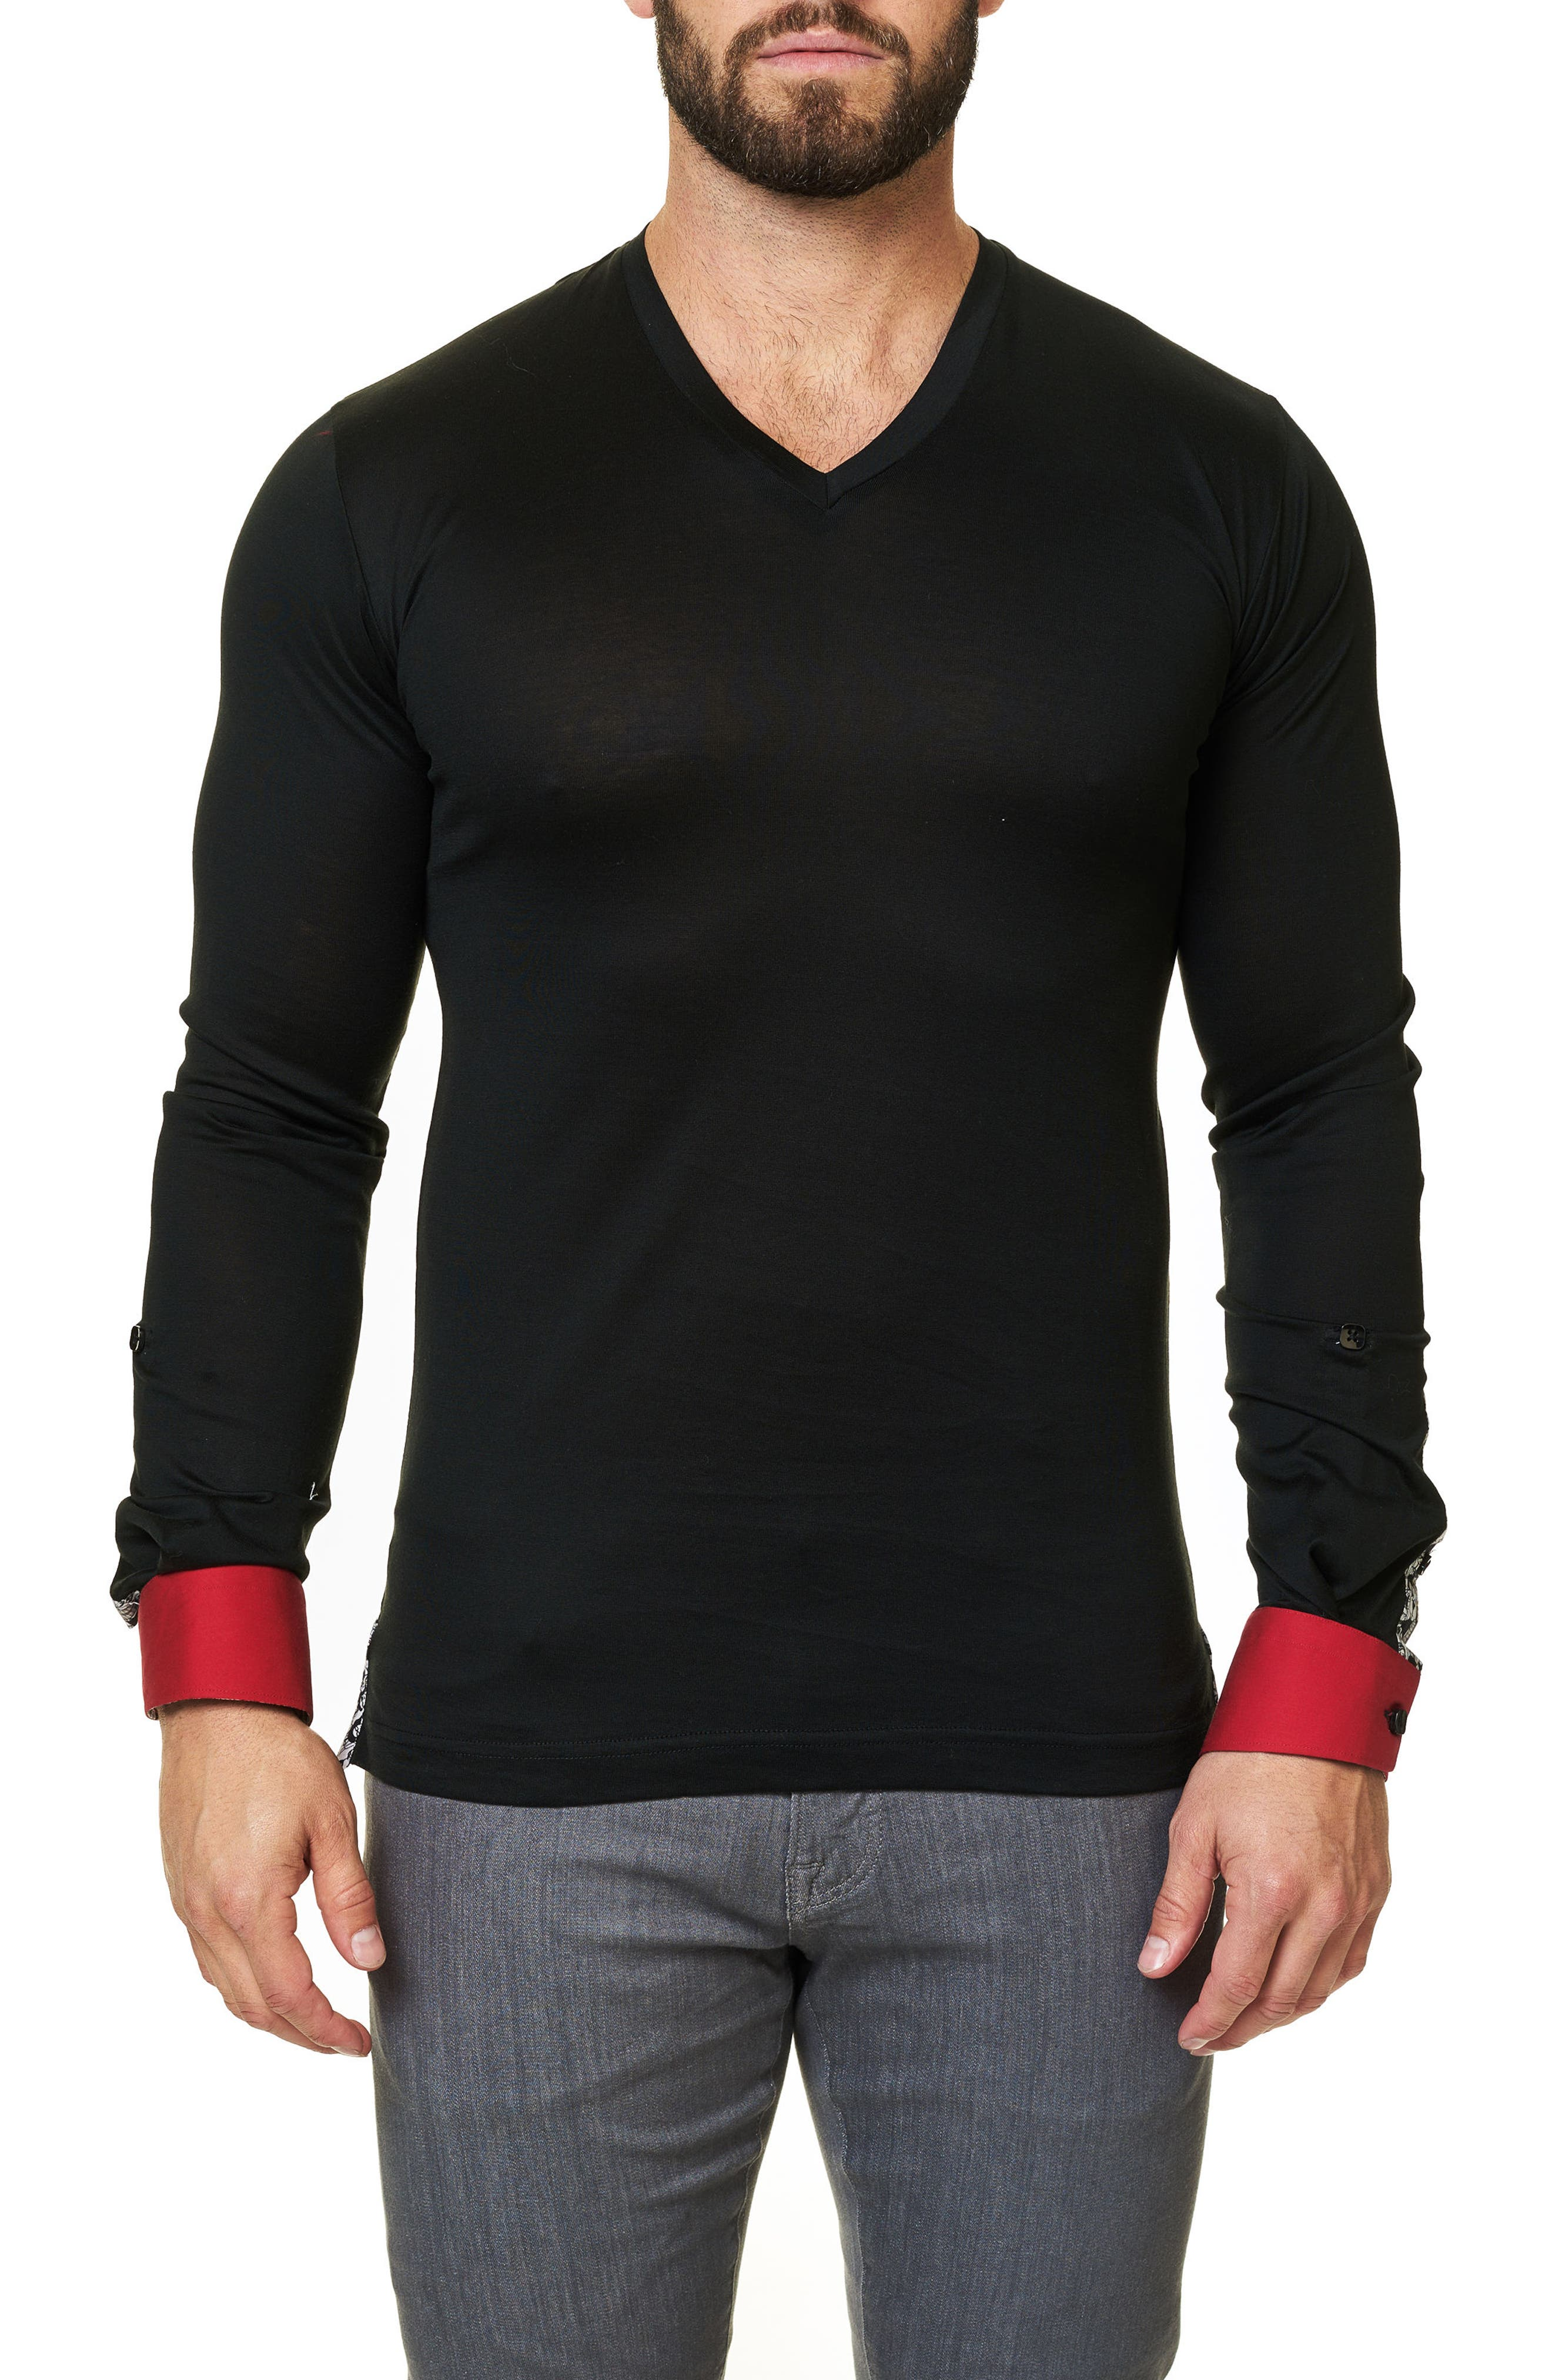 Alternate Image 1 Selected - Maceoo Long Sleeve V-Neck